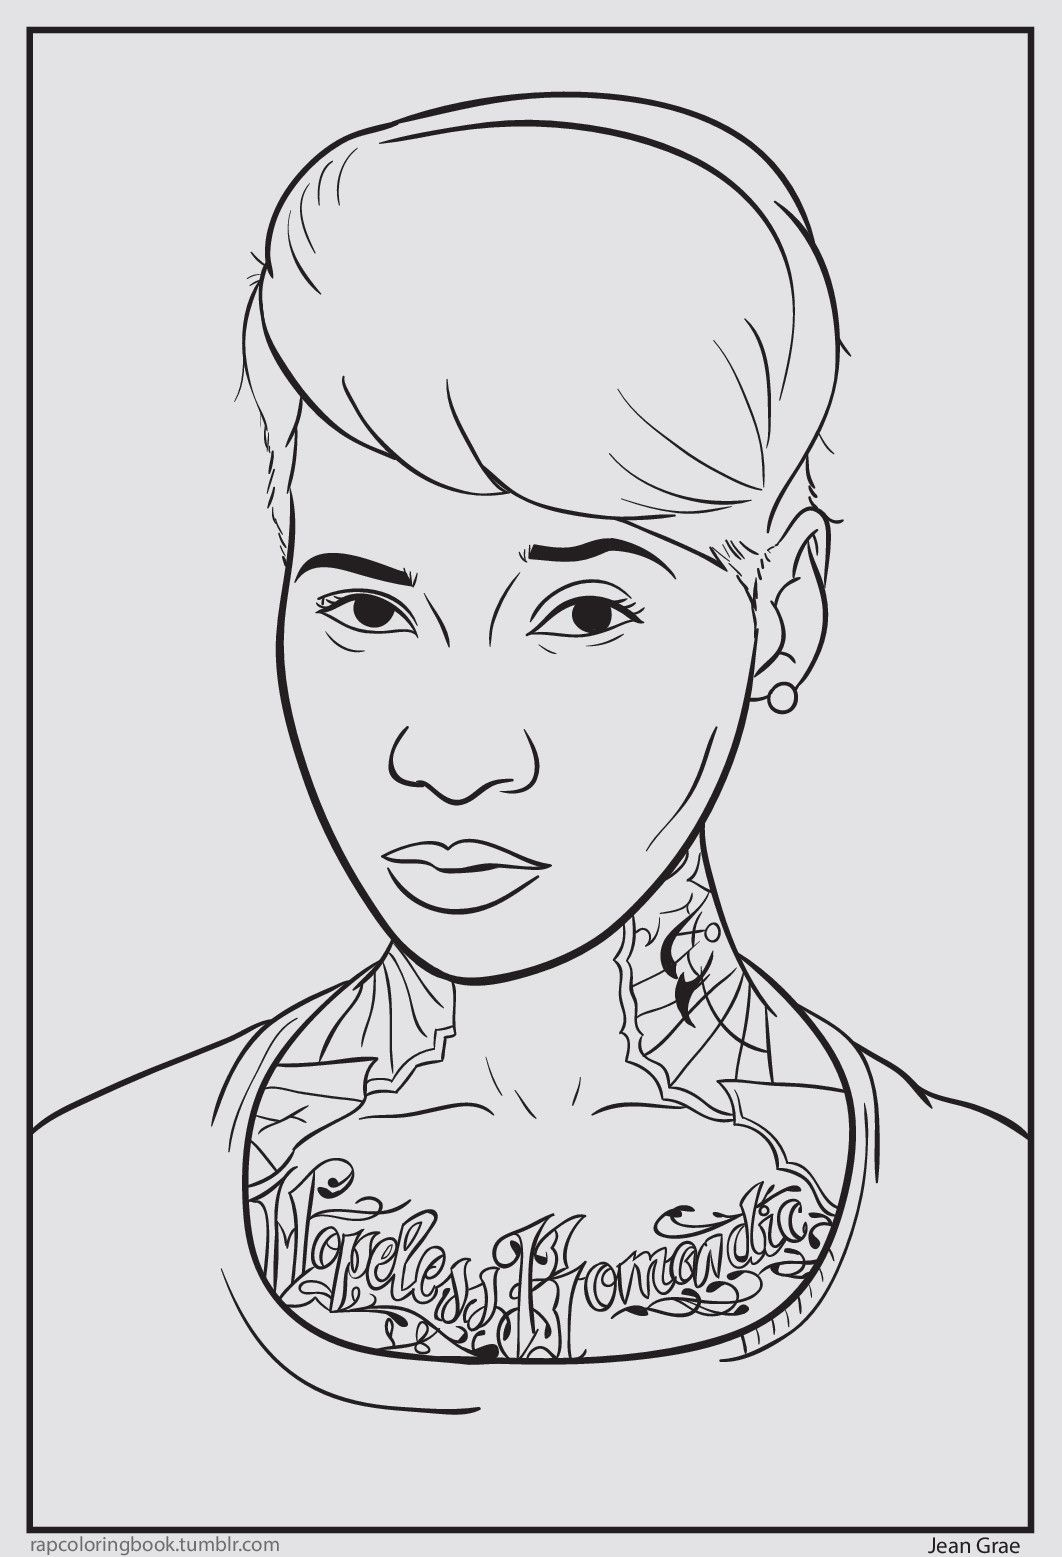 click here to download the jean grae coloring page print it out